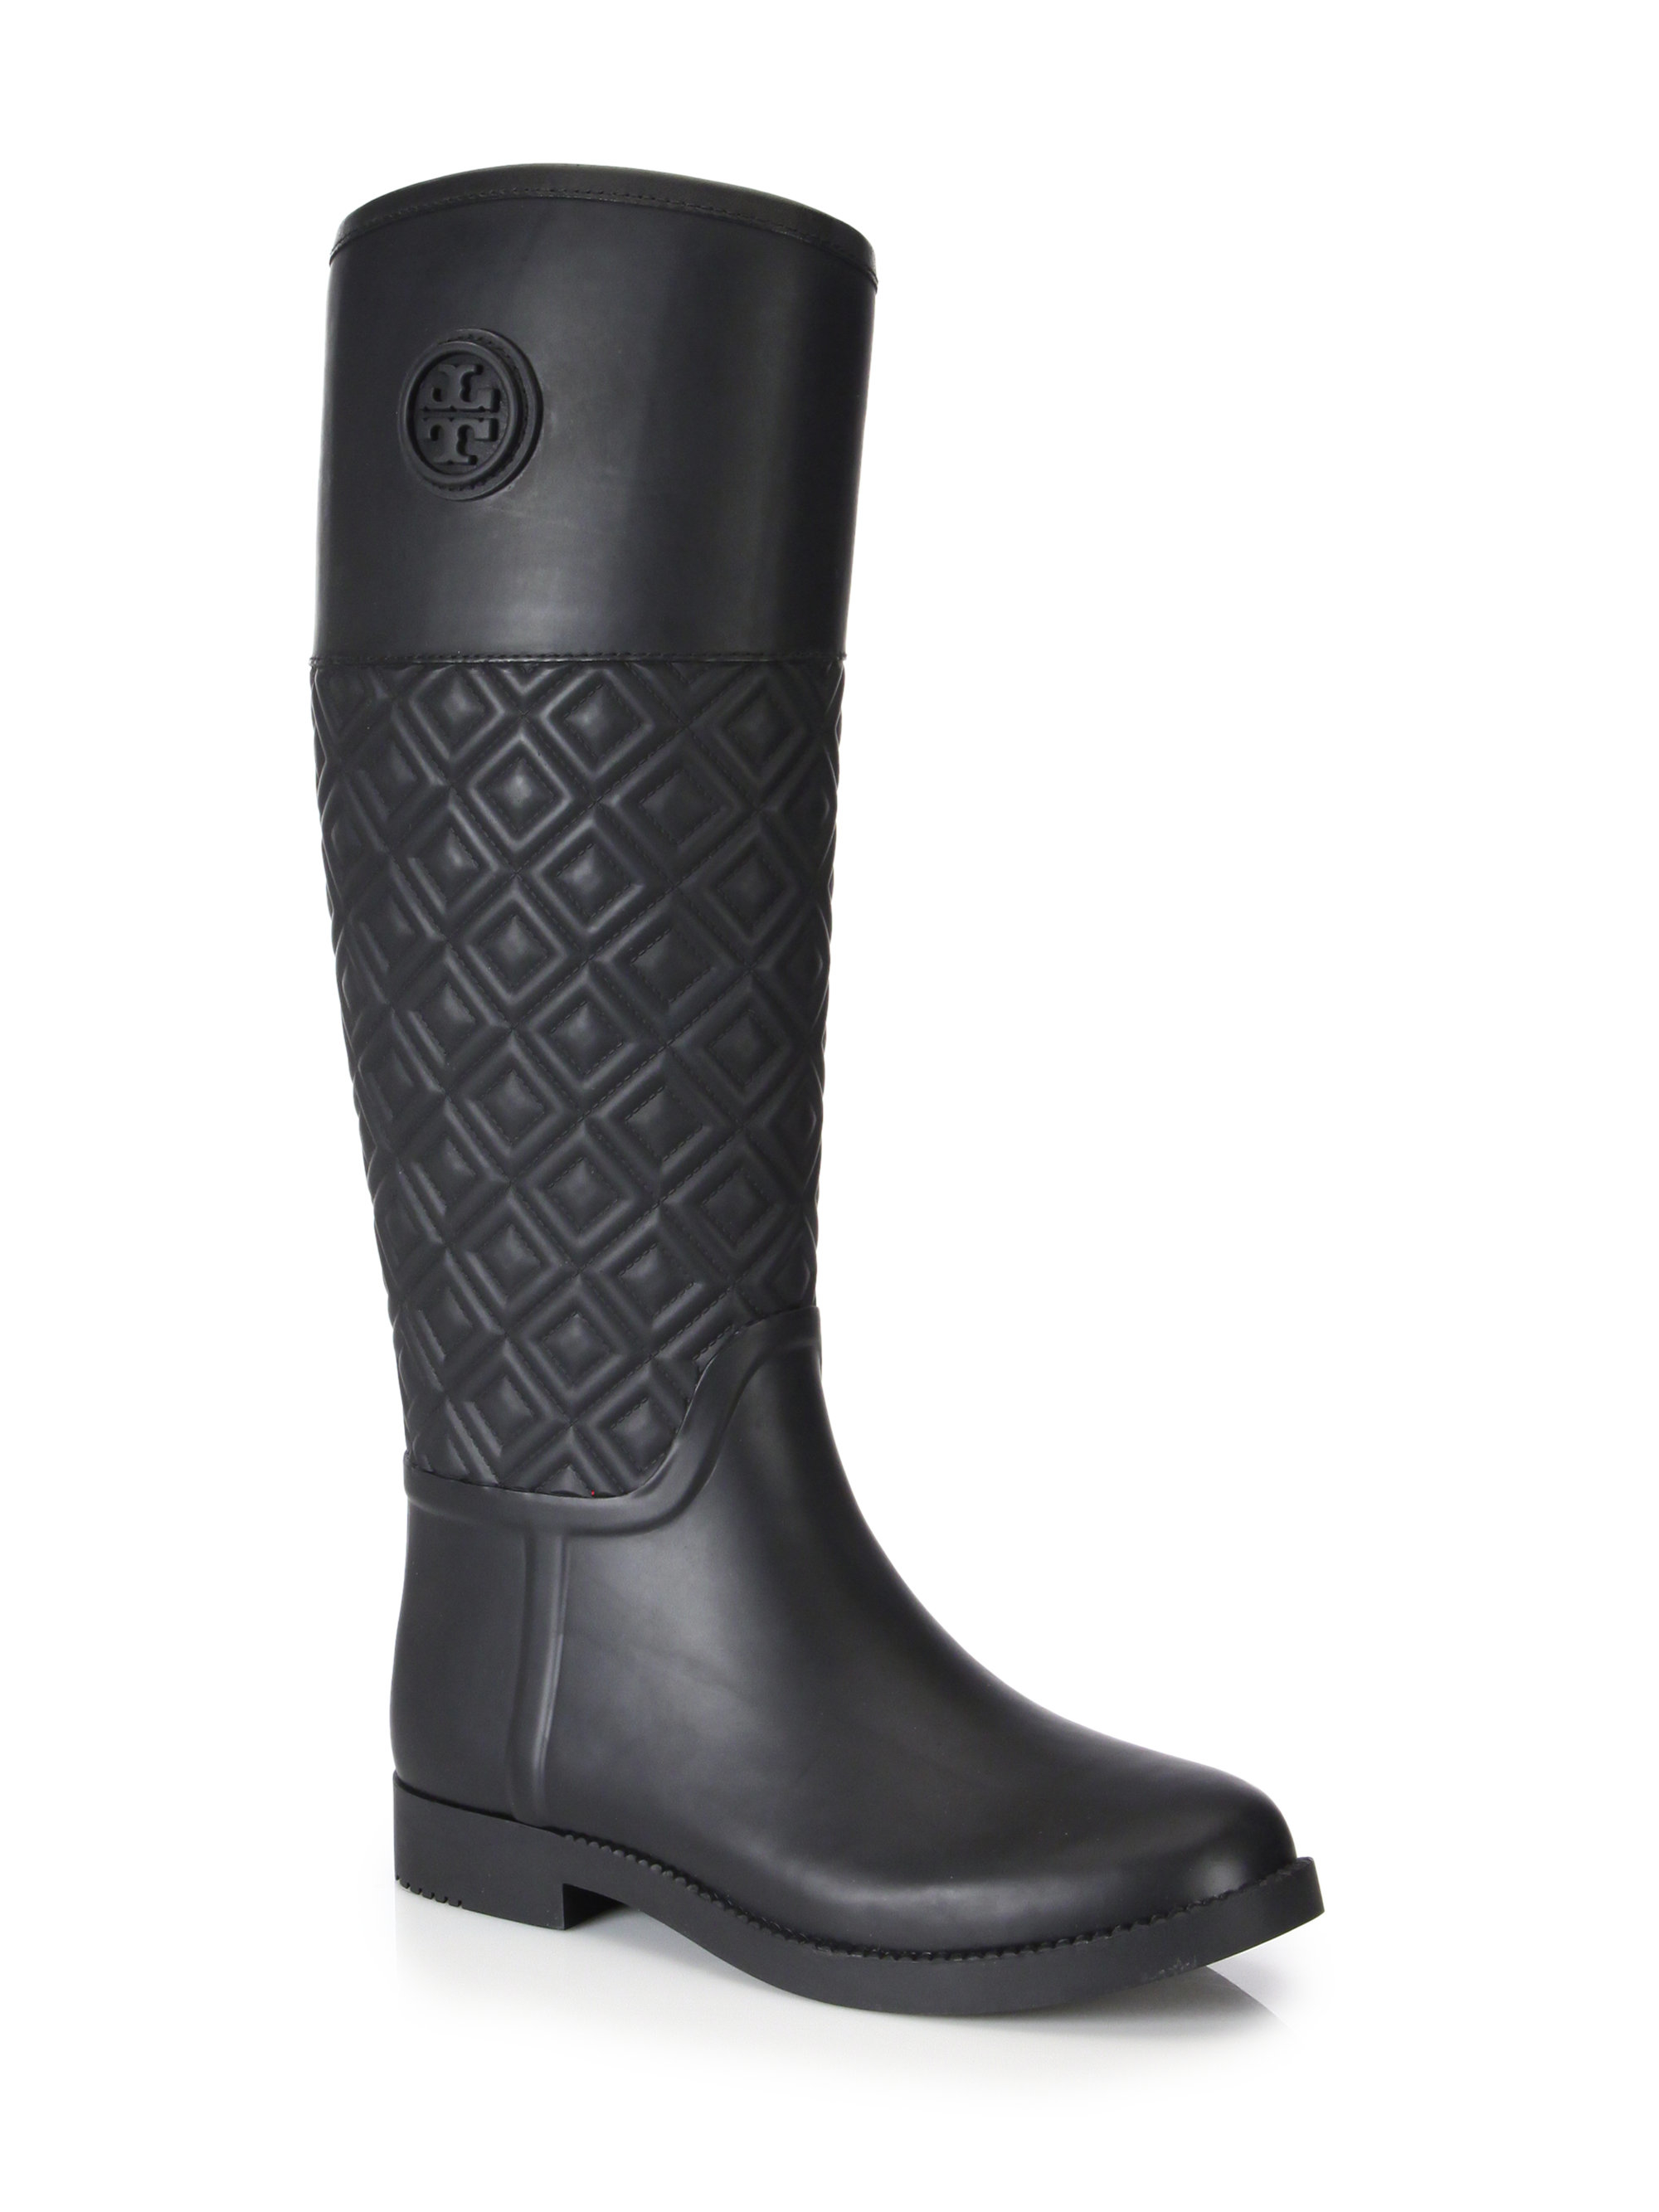 Tory burch Marion Quilted Rubber Rain Boots in Black | Lyst : quilted rainboots - Adamdwight.com